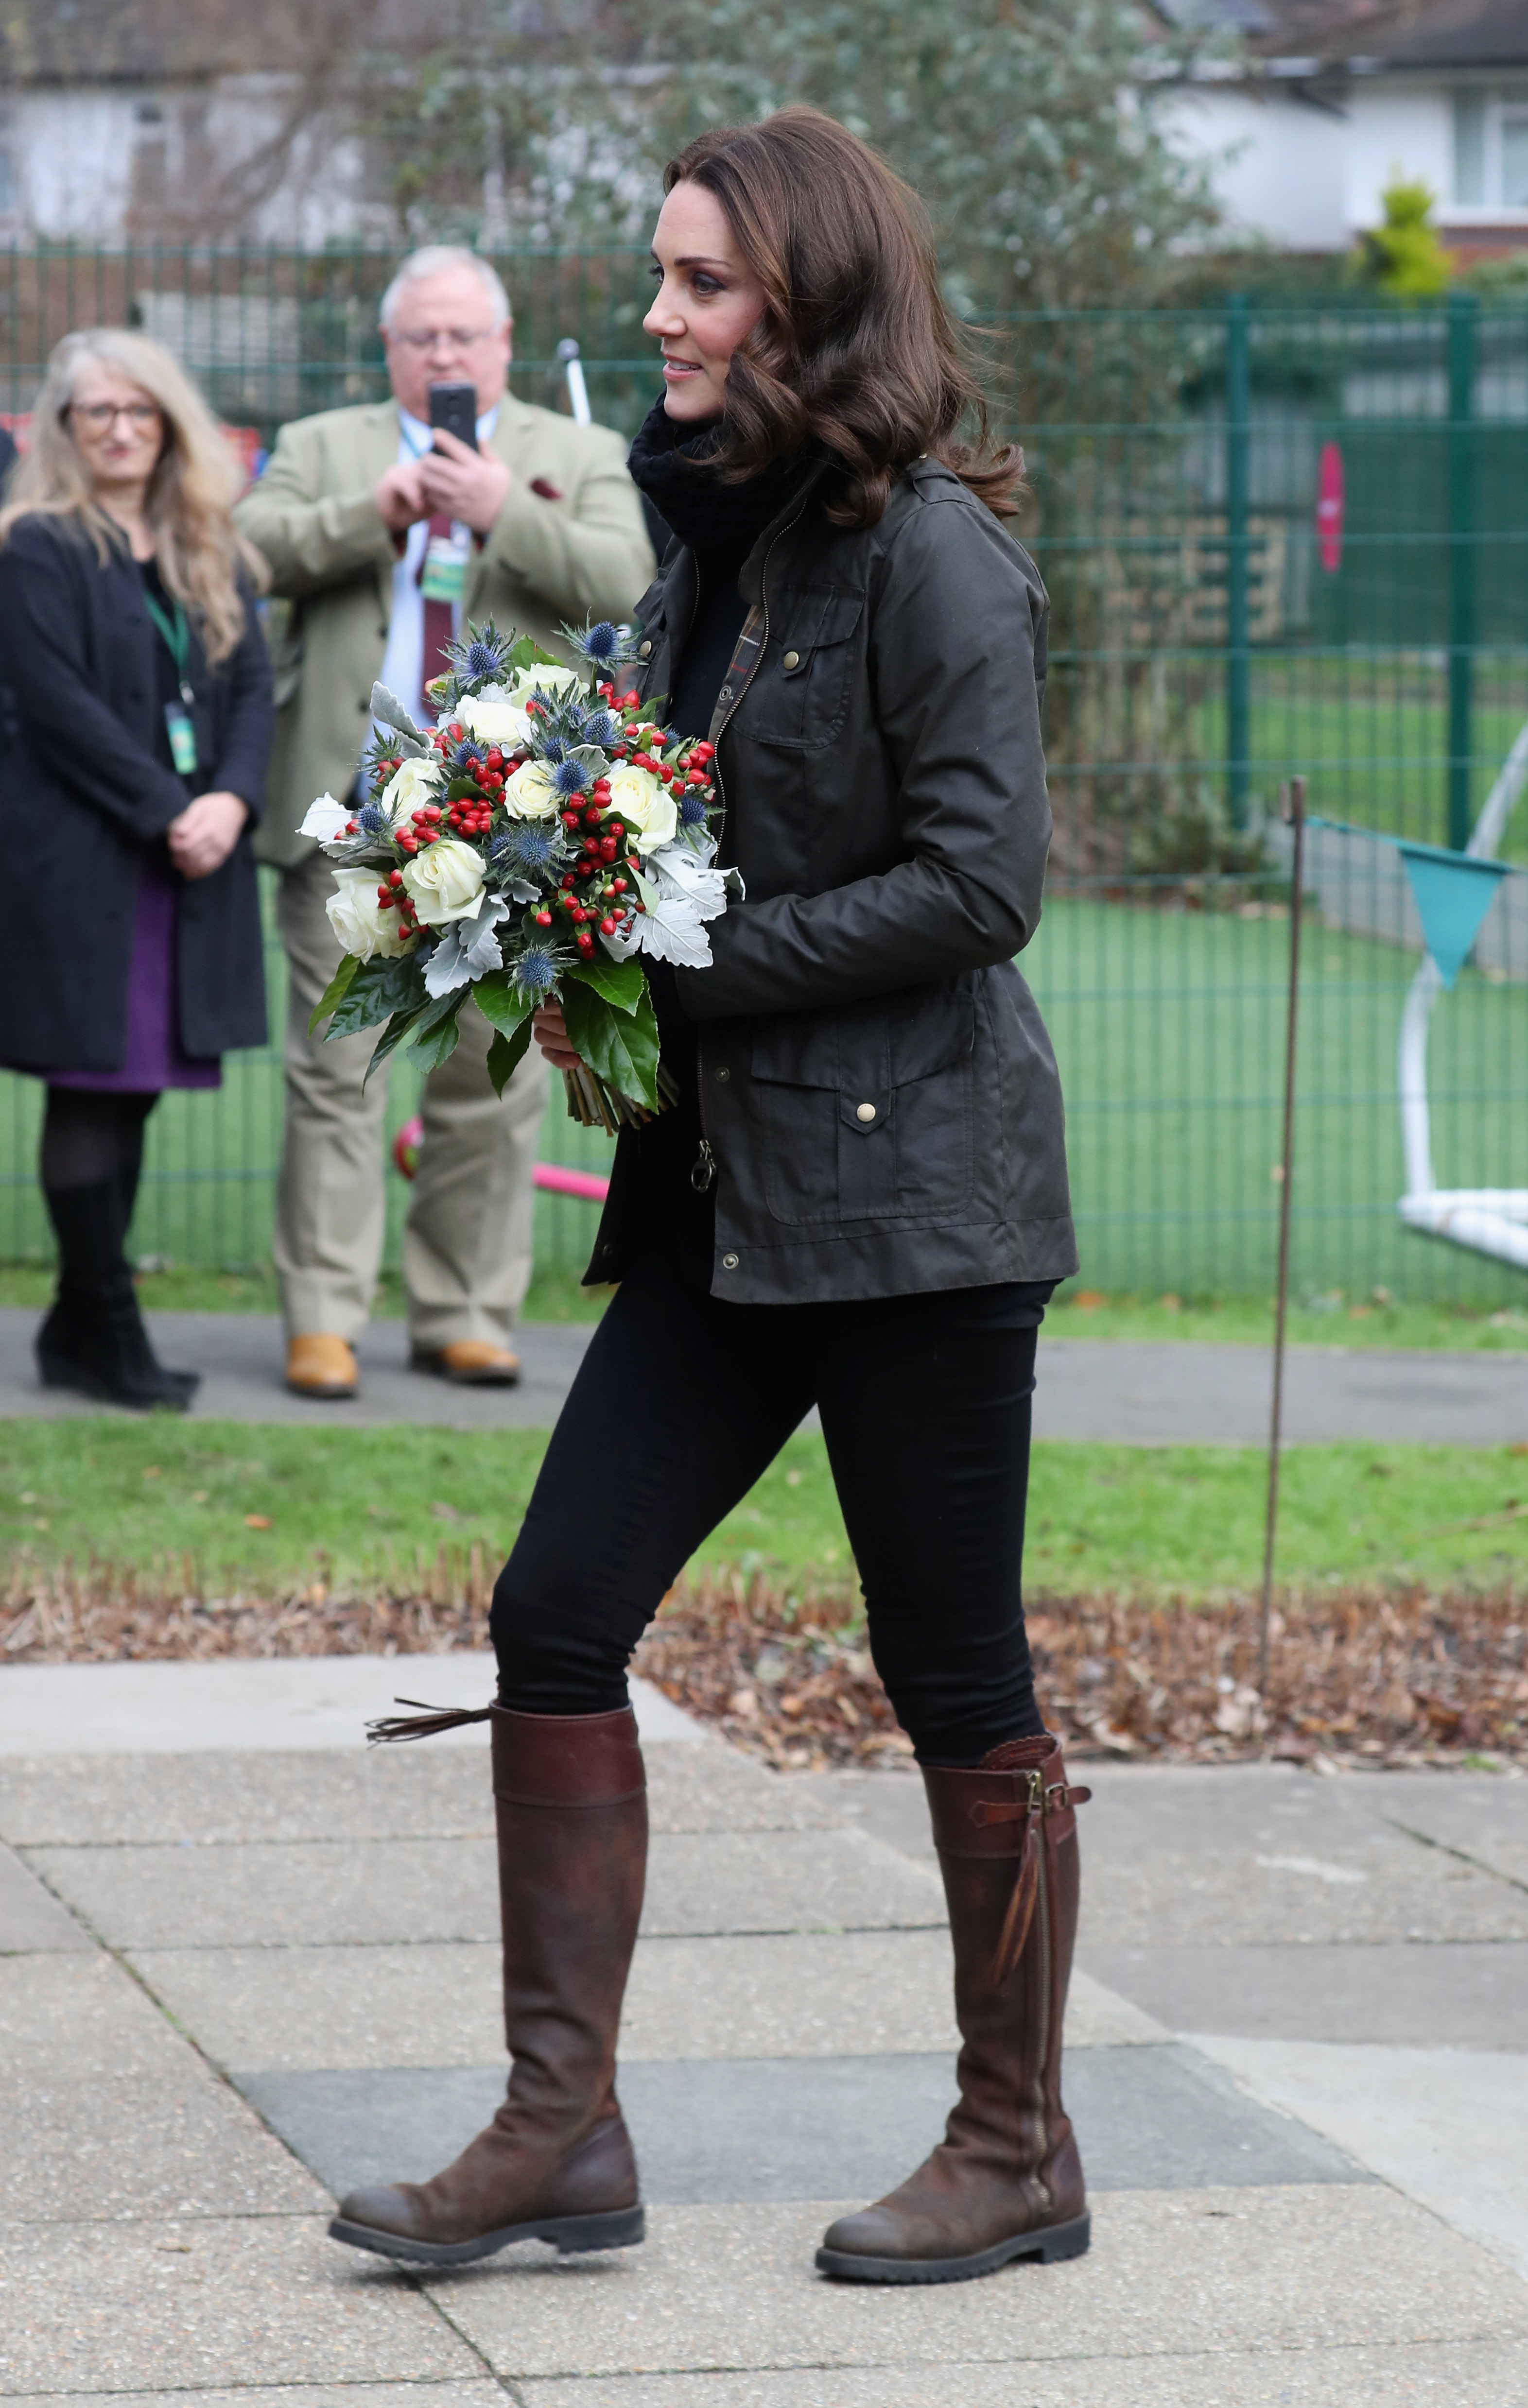 Catherine, Duchess of Cambridge visits the Robin Hood Primary School to celebrate ten years of The Royal Horticultural Society campaign for school gardening on November 29, 2017 in London